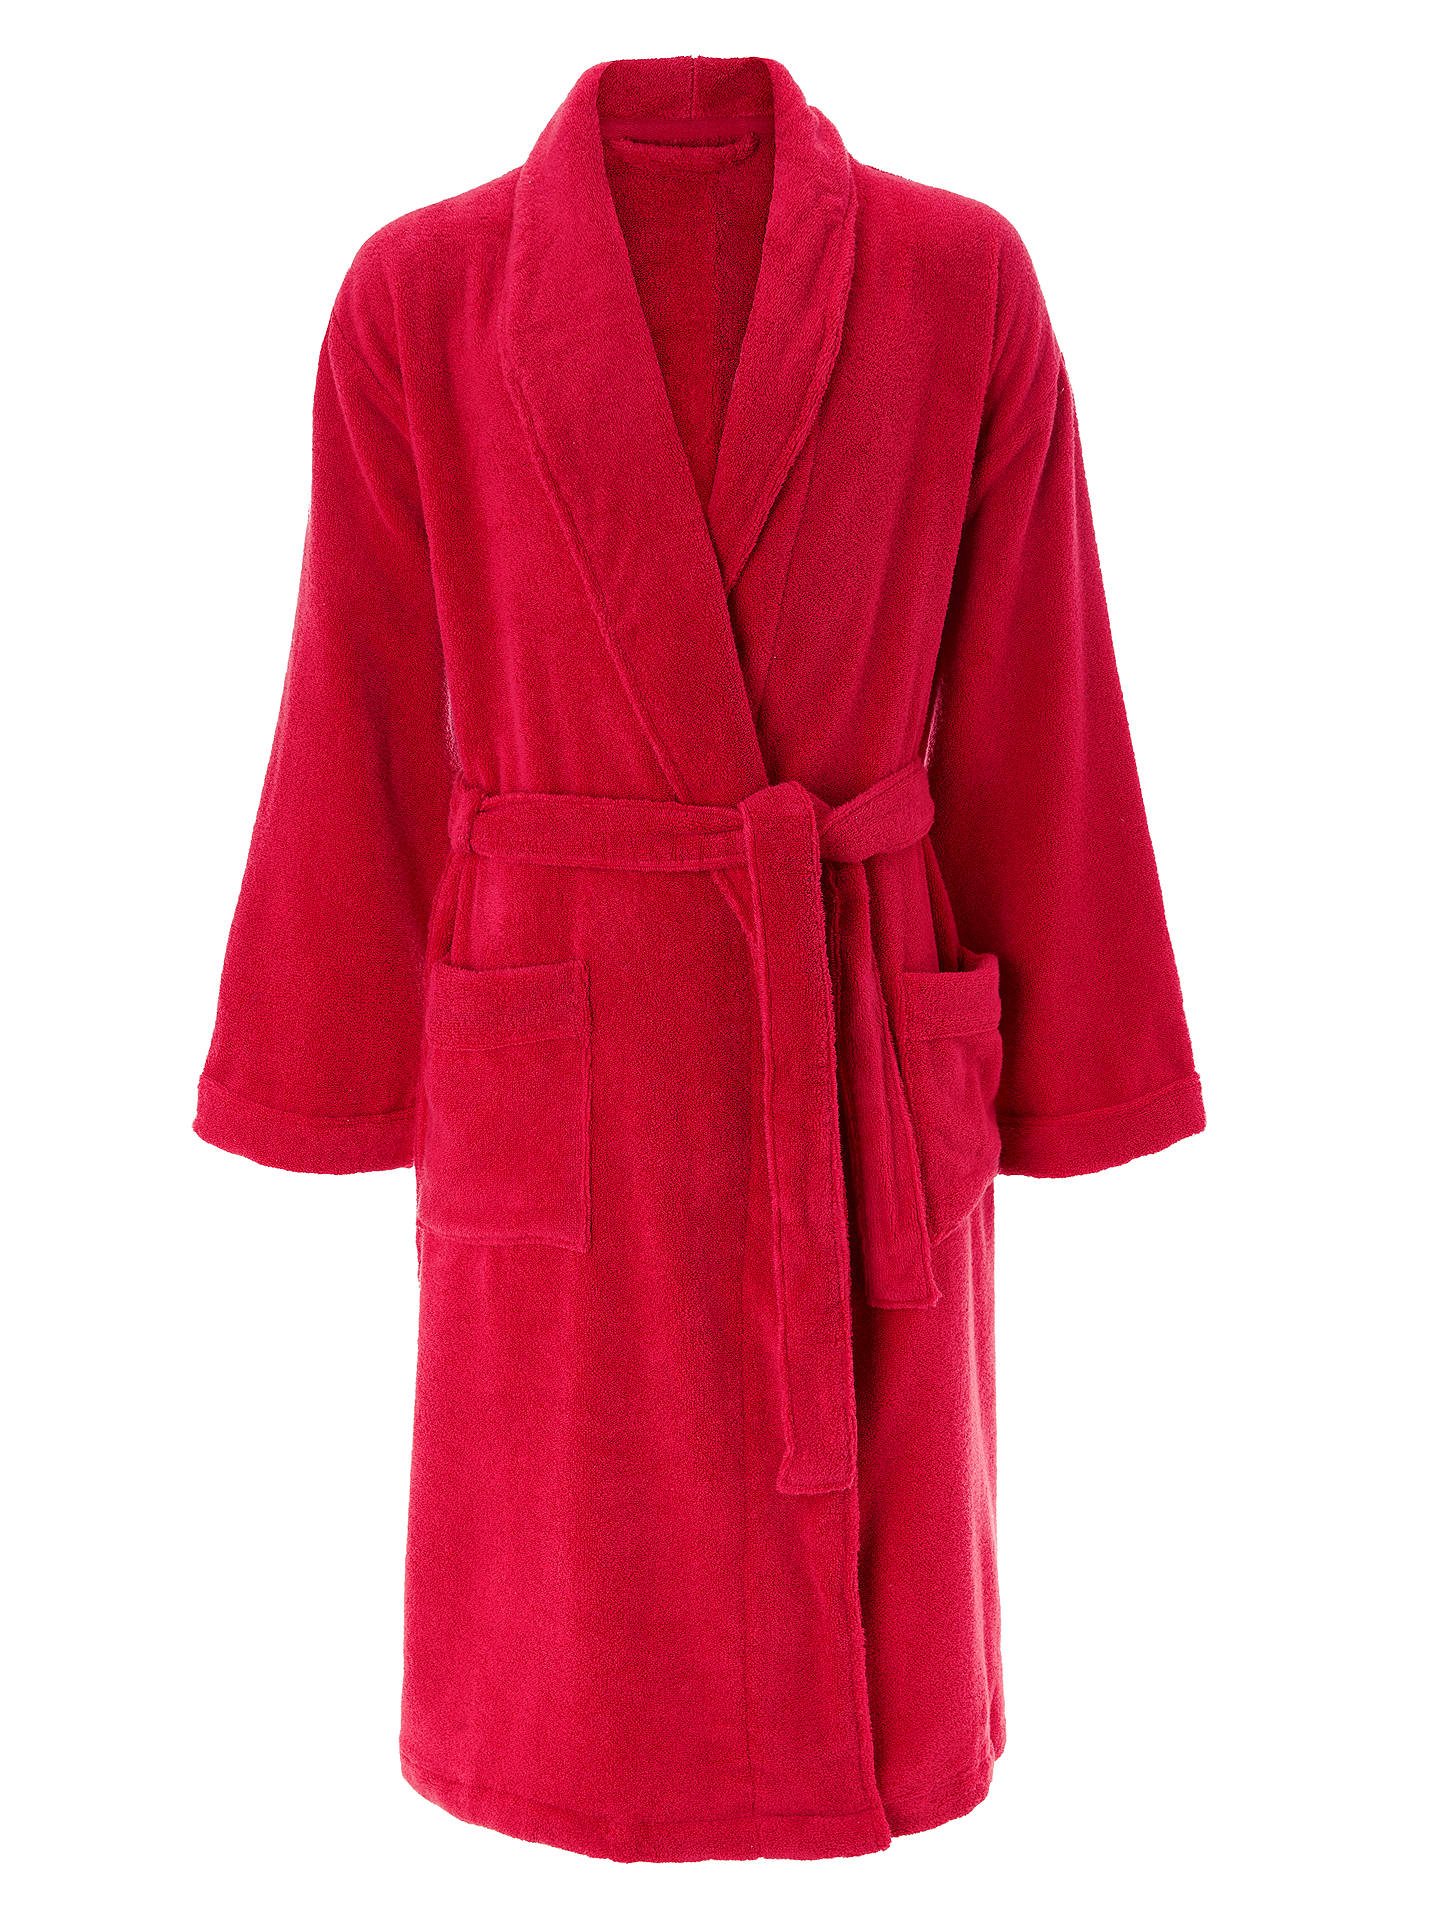 391aae17f8 John Lewis   Partners Super Soft and Cosy Unisex Cotton Bath Robe at ...